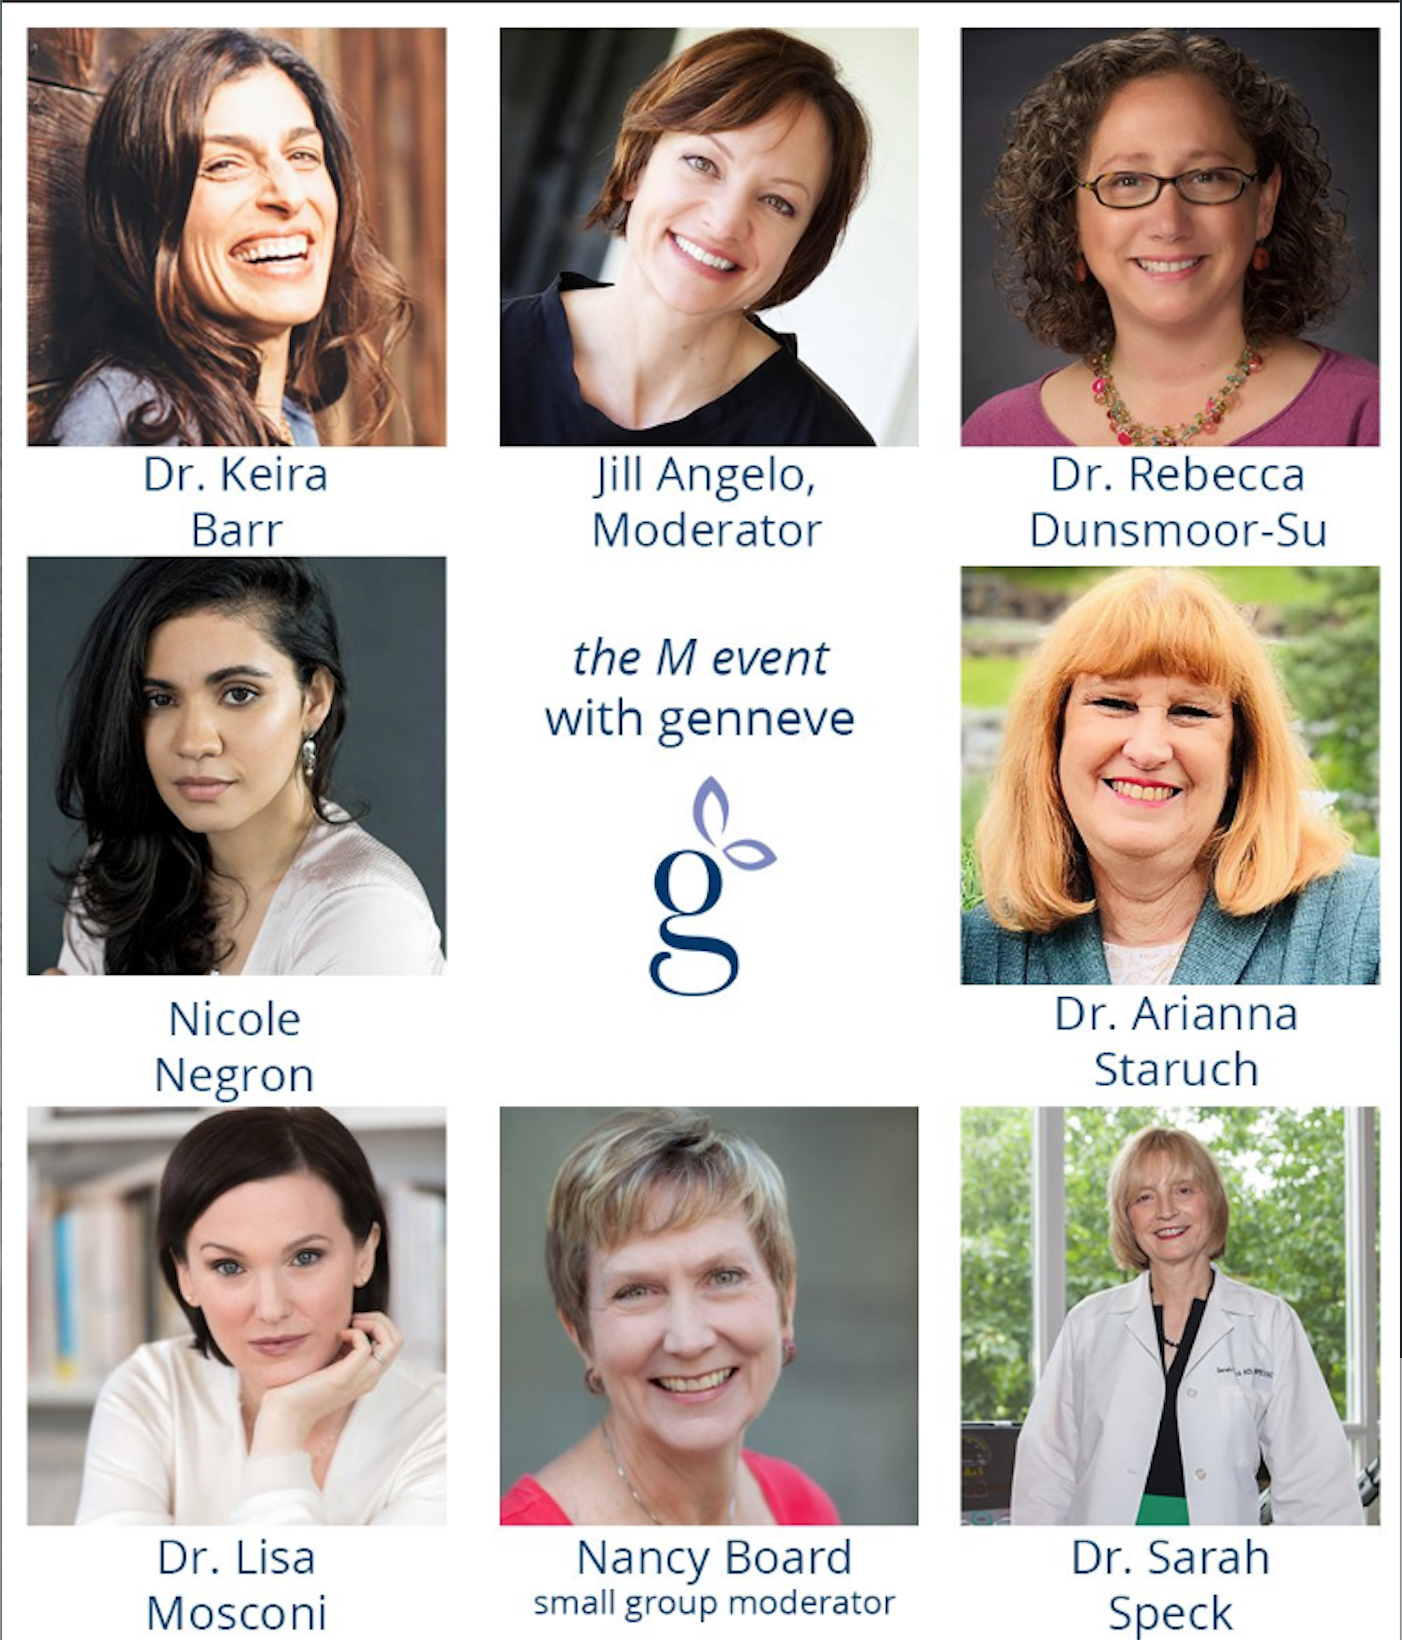 The M Event - Women's Health in Midlife is The Worst-Kept Secret in the World. Menopause happens to half the population, yet no one talks about it. Which means a whole lot of women get blindsided by sudden, often dramatic changes when they hit their 40s and 50s.The M Event (onsite and live-stream) will tackle the physical and emotional health changes most midlife women go through but no one talks about. You'll hear licensed health care professionals talk through what's normal and what's not and how you can take actions to care for yourself in ways you never imagined.When: November 10, 2018, 8:30 AM – 2:00 PM PSTWhere: Bastyr University, 14500 Juanita Drive Northeast, Kenmore, WA 98028Schedule and link to register here.